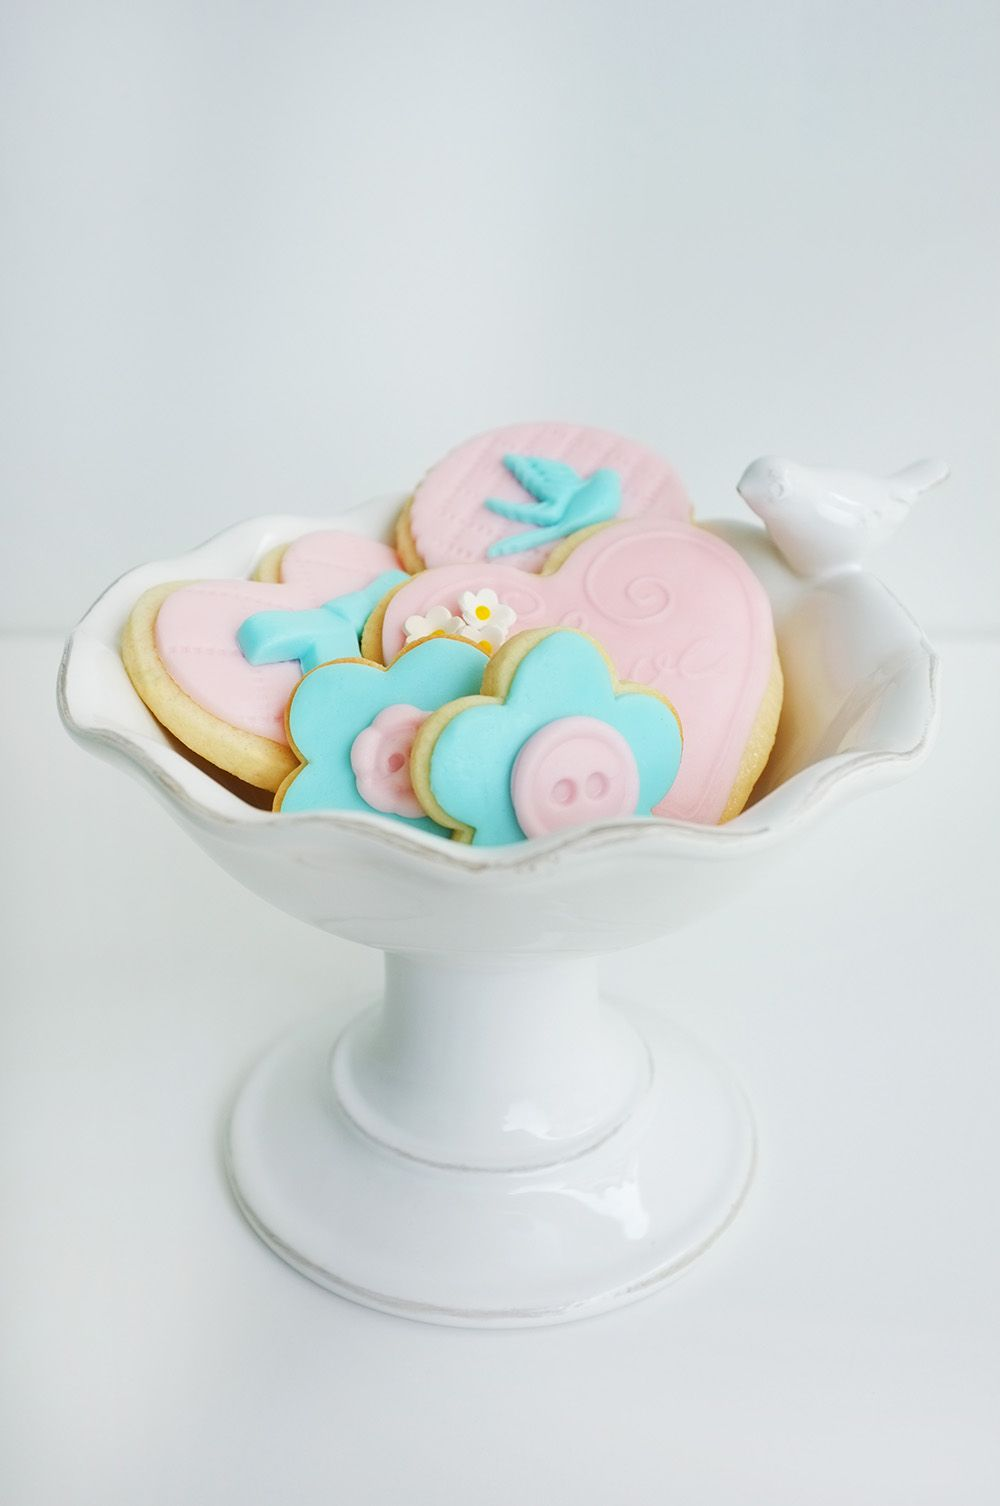 Yummy and very cute fondant cookies!!!!